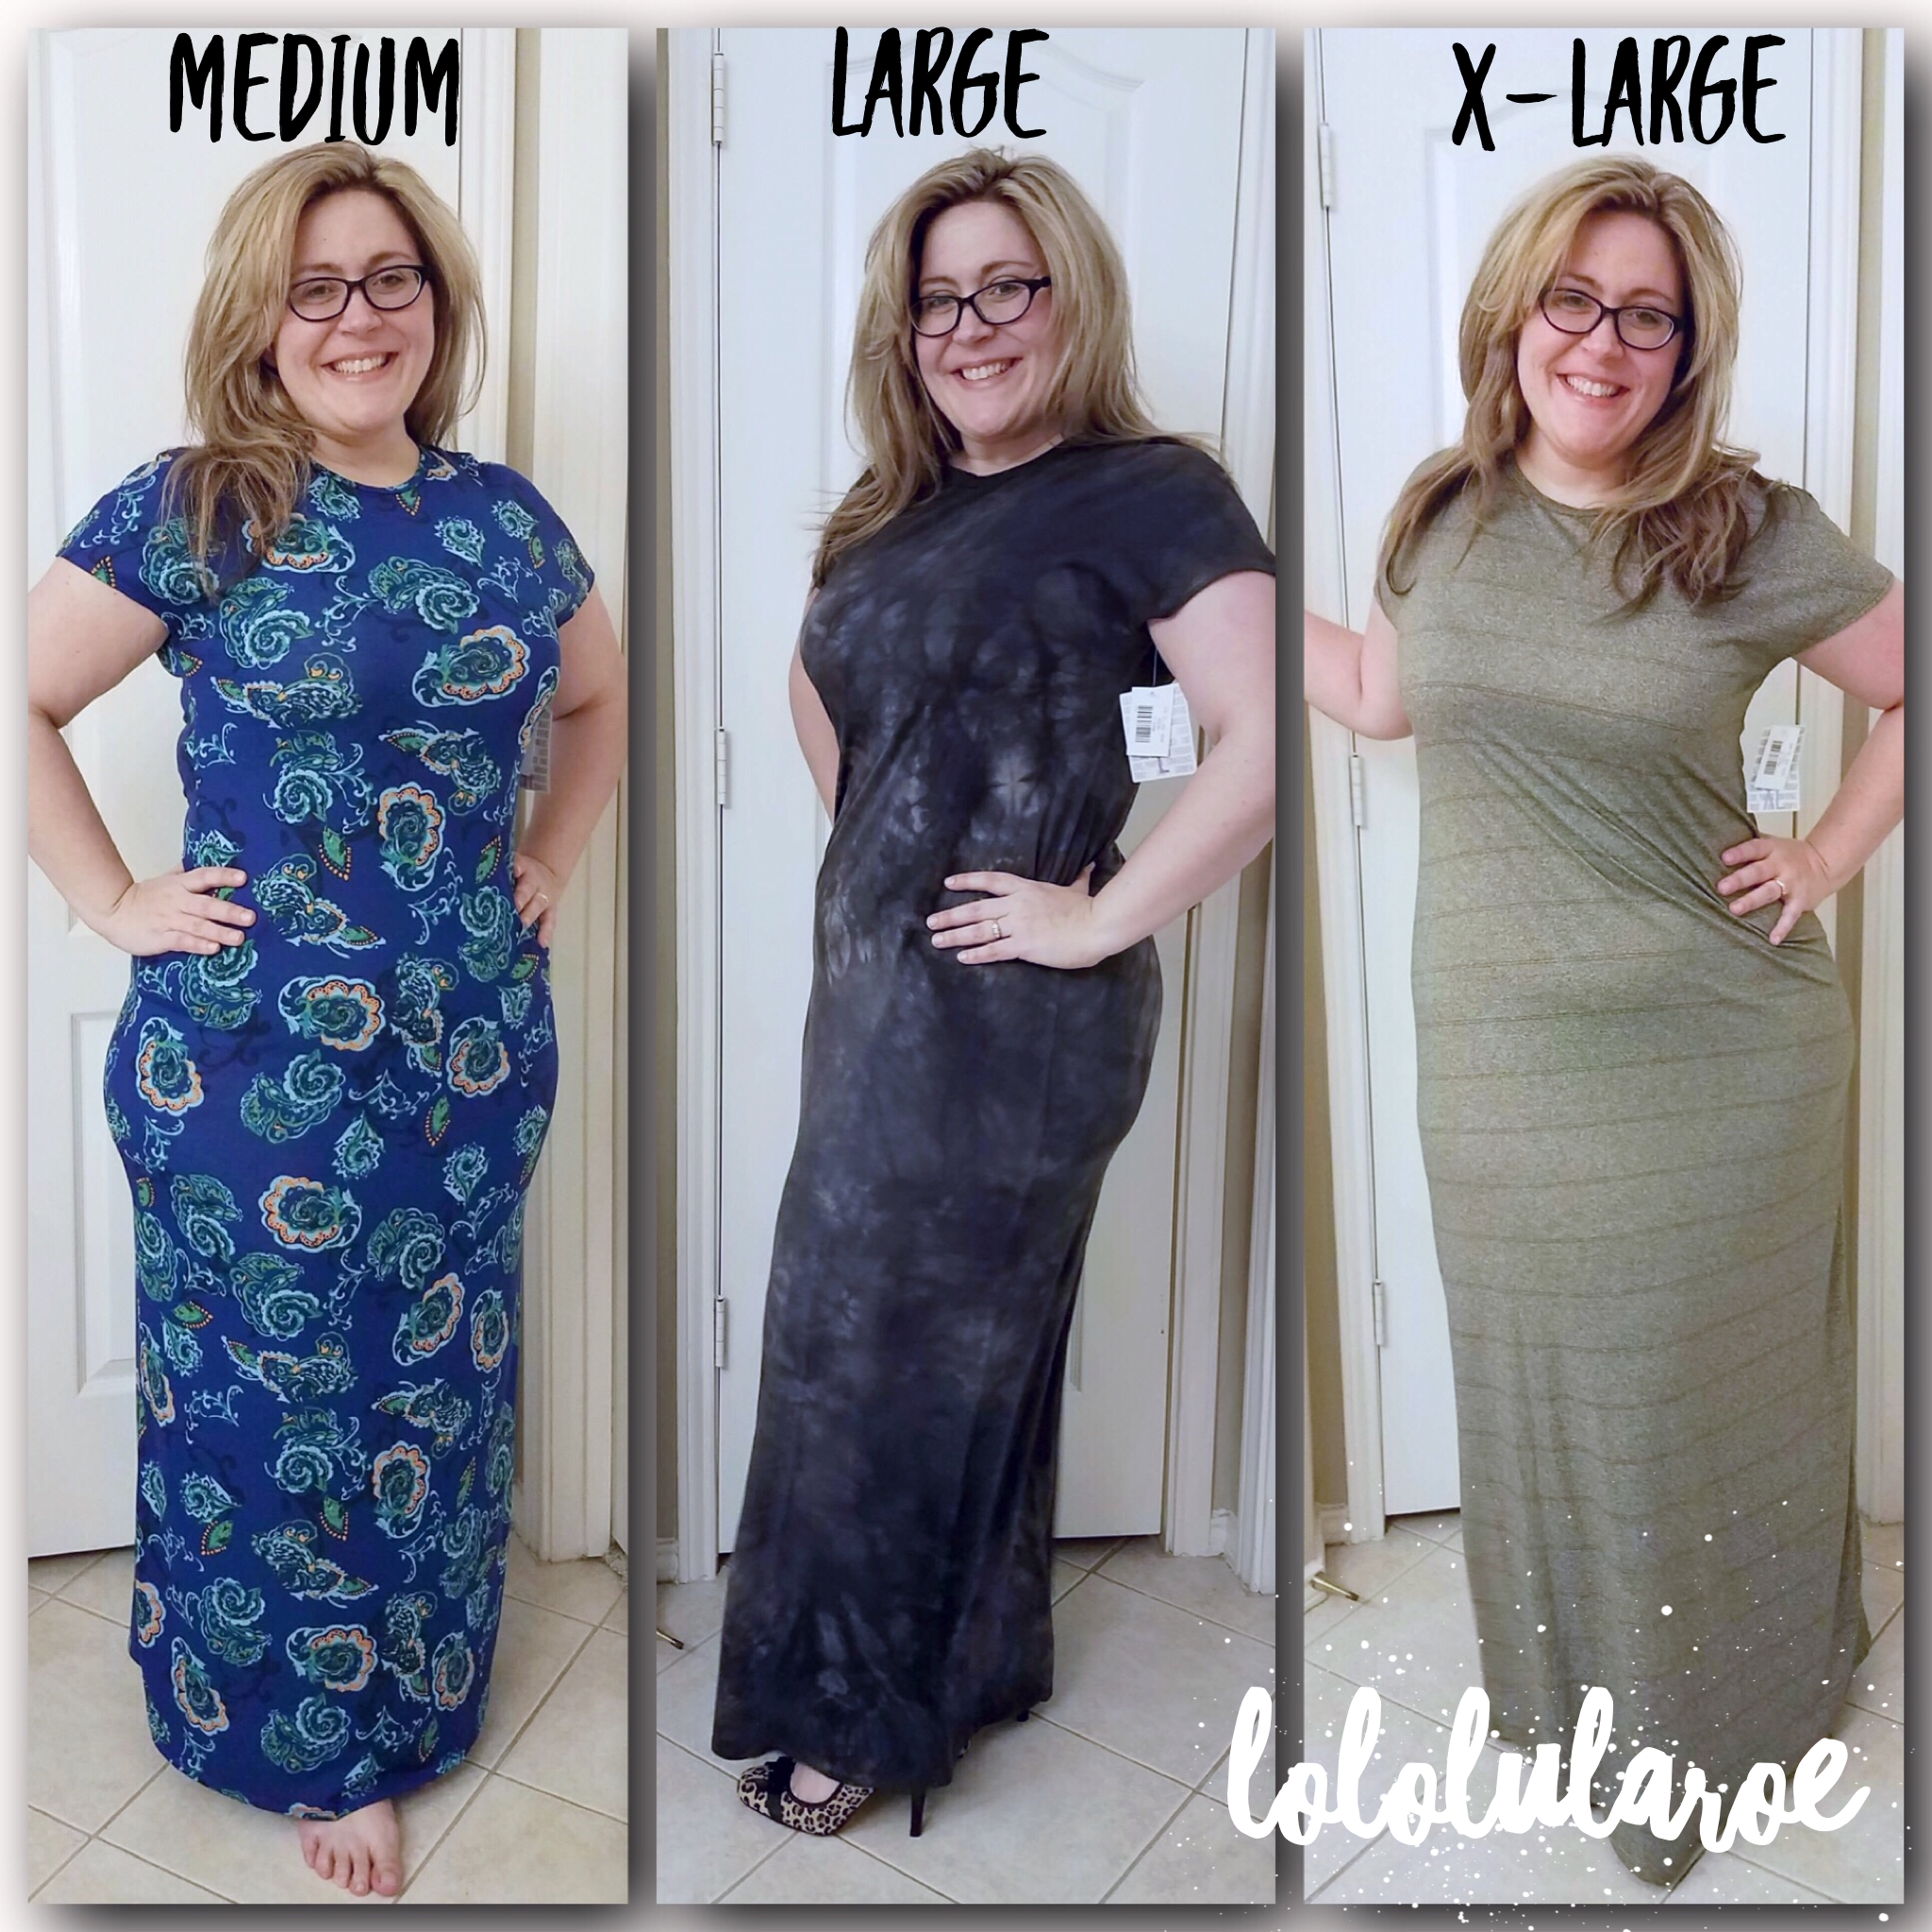 016bba6f1f0142 New LuLaRoe Maria Sizing - Here I am wearing the new Maria in three sizes.  You can see that the larger sizes add more fabric around the middle, arms,  ...